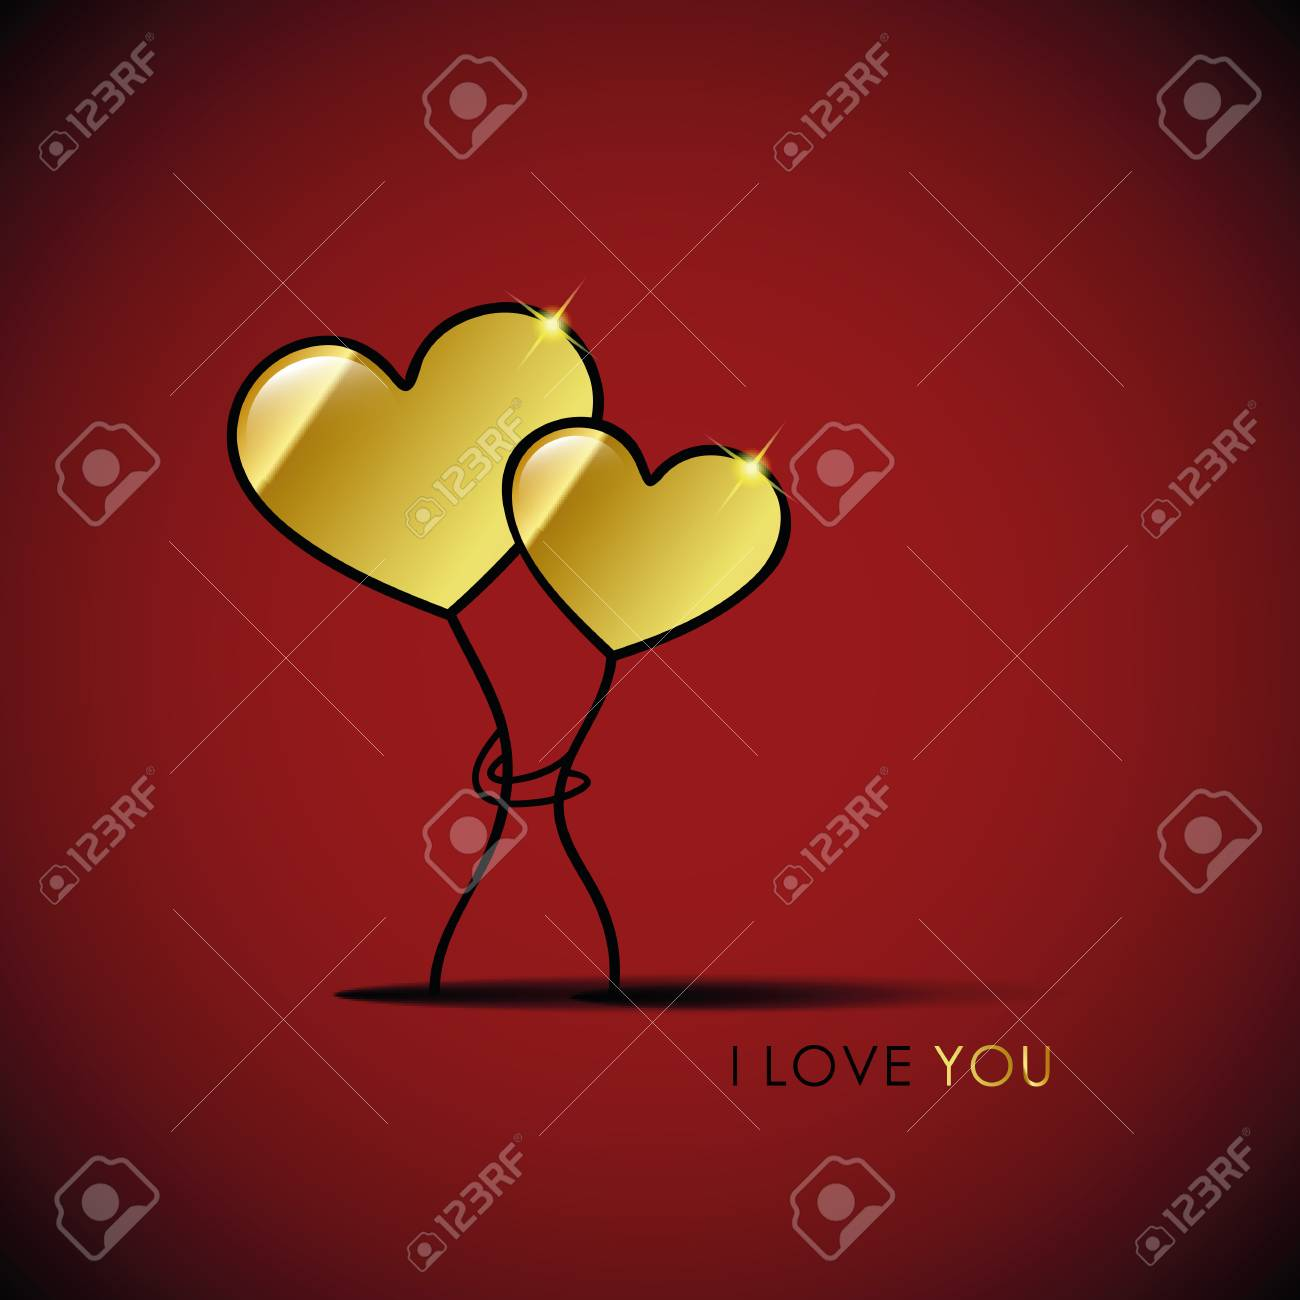 two golden hearts i love you vector illustration - 106231148